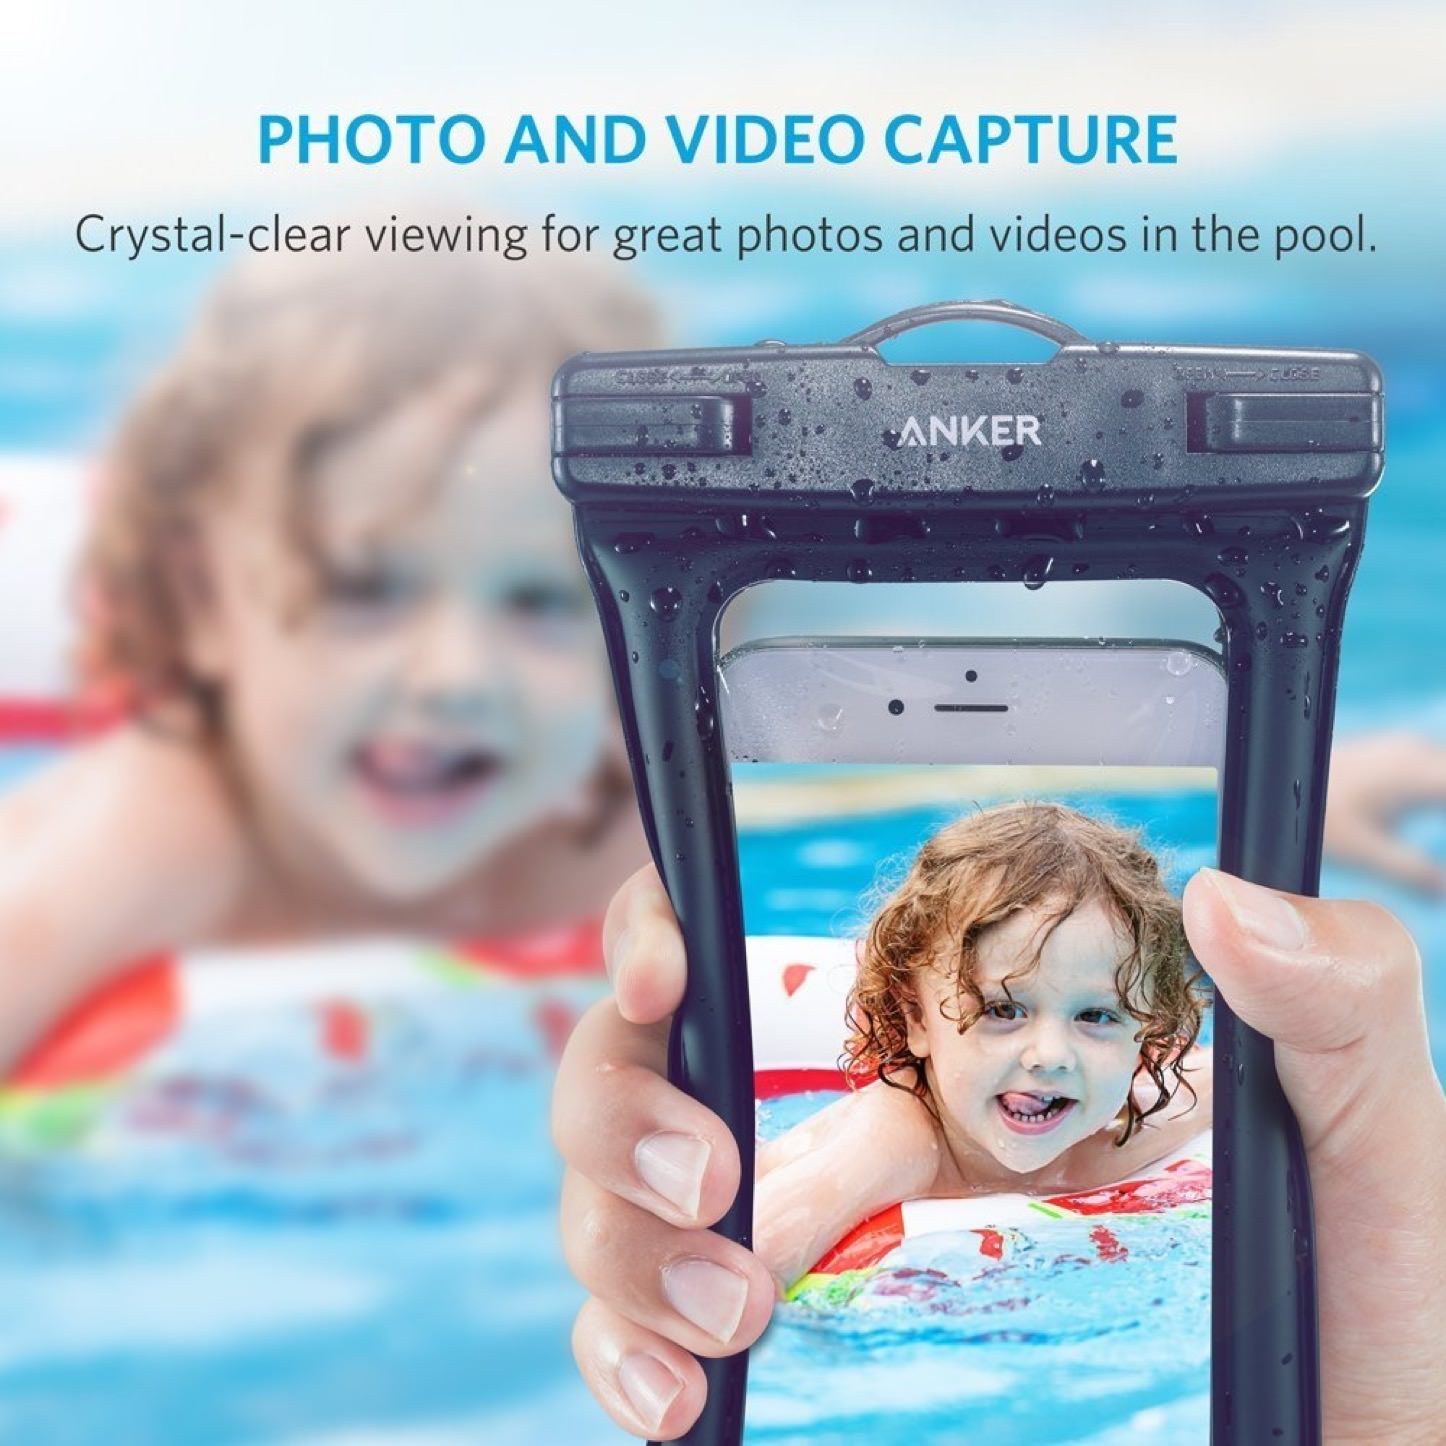 Anker-Waterproof-Case-05.jpg